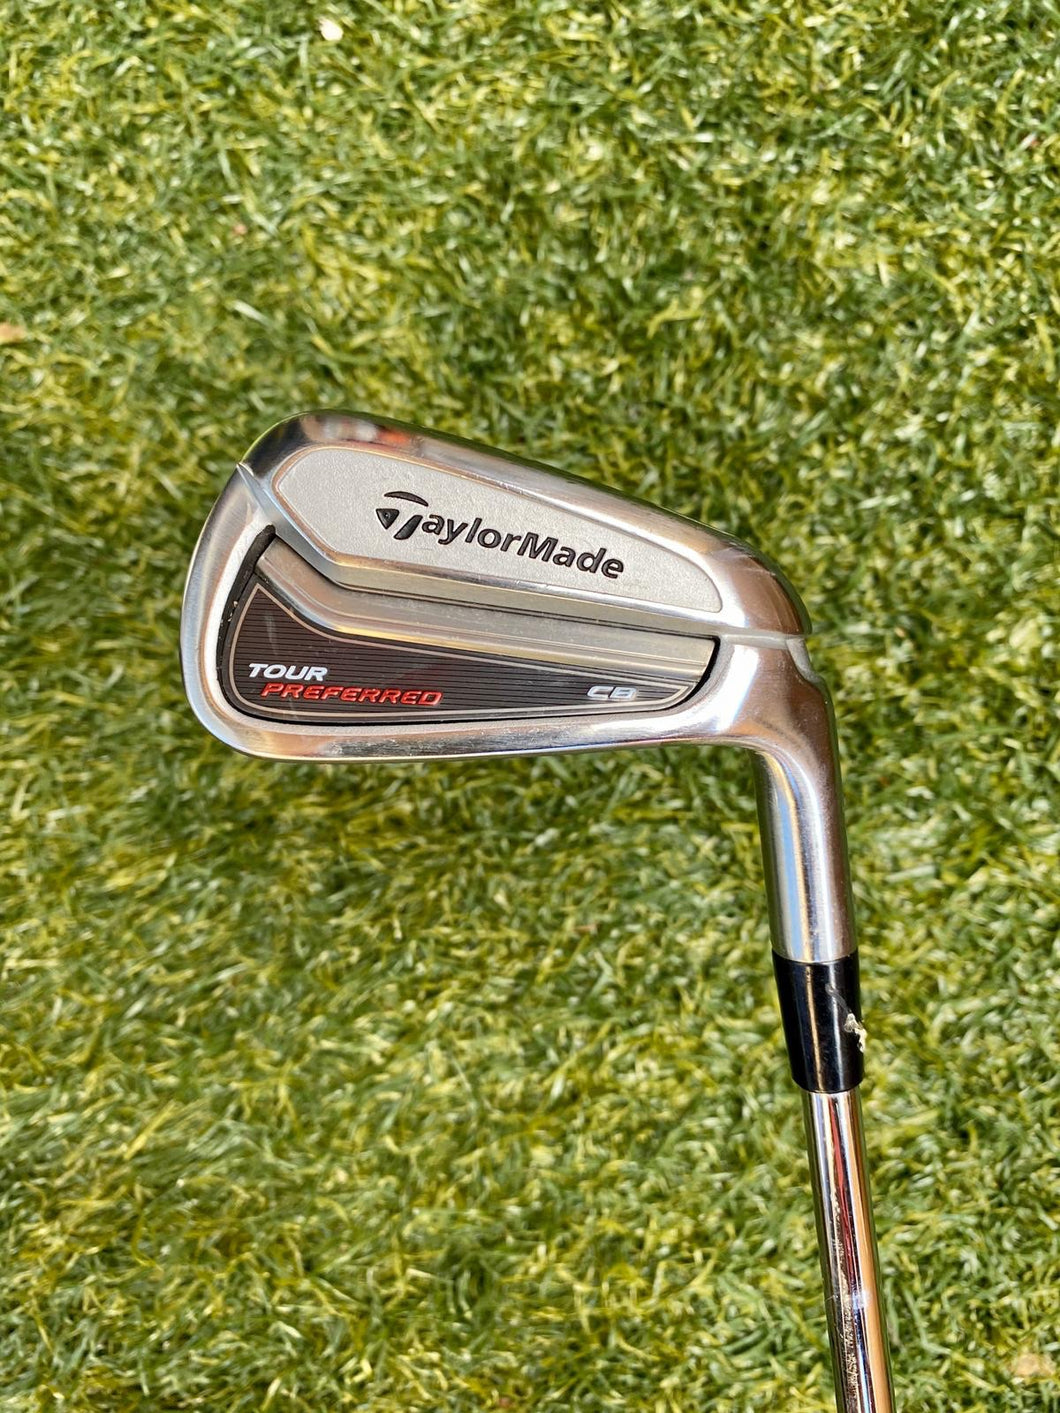 TaylorMade Tour Preferred CB 6 Single Iron, RH, KBS Tour Stiff Steel Shaft- Good Condition